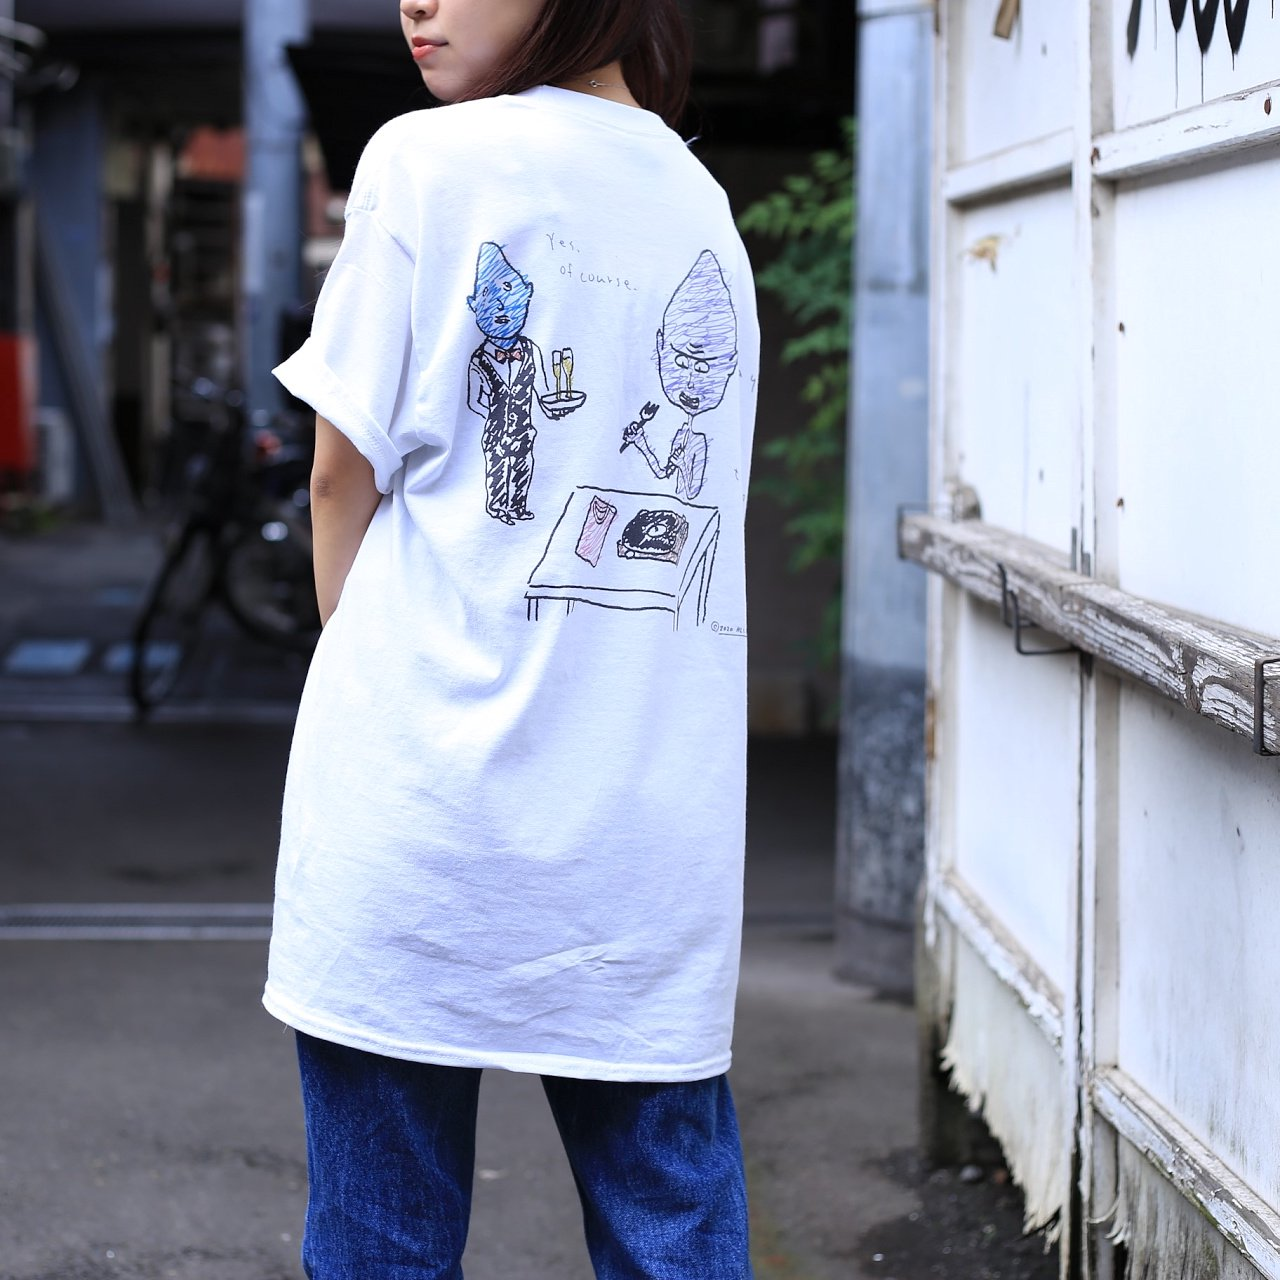 """<img class='new_mark_img1' src='https://img.shop-pro.jp/img/new/icons14.gif' style='border:none;display:inline;margin:0px;padding:0px;width:auto;' />HLC Kaoru Hashimoto×Shirube """"May I Eat This ?"""" Tシャツ"""